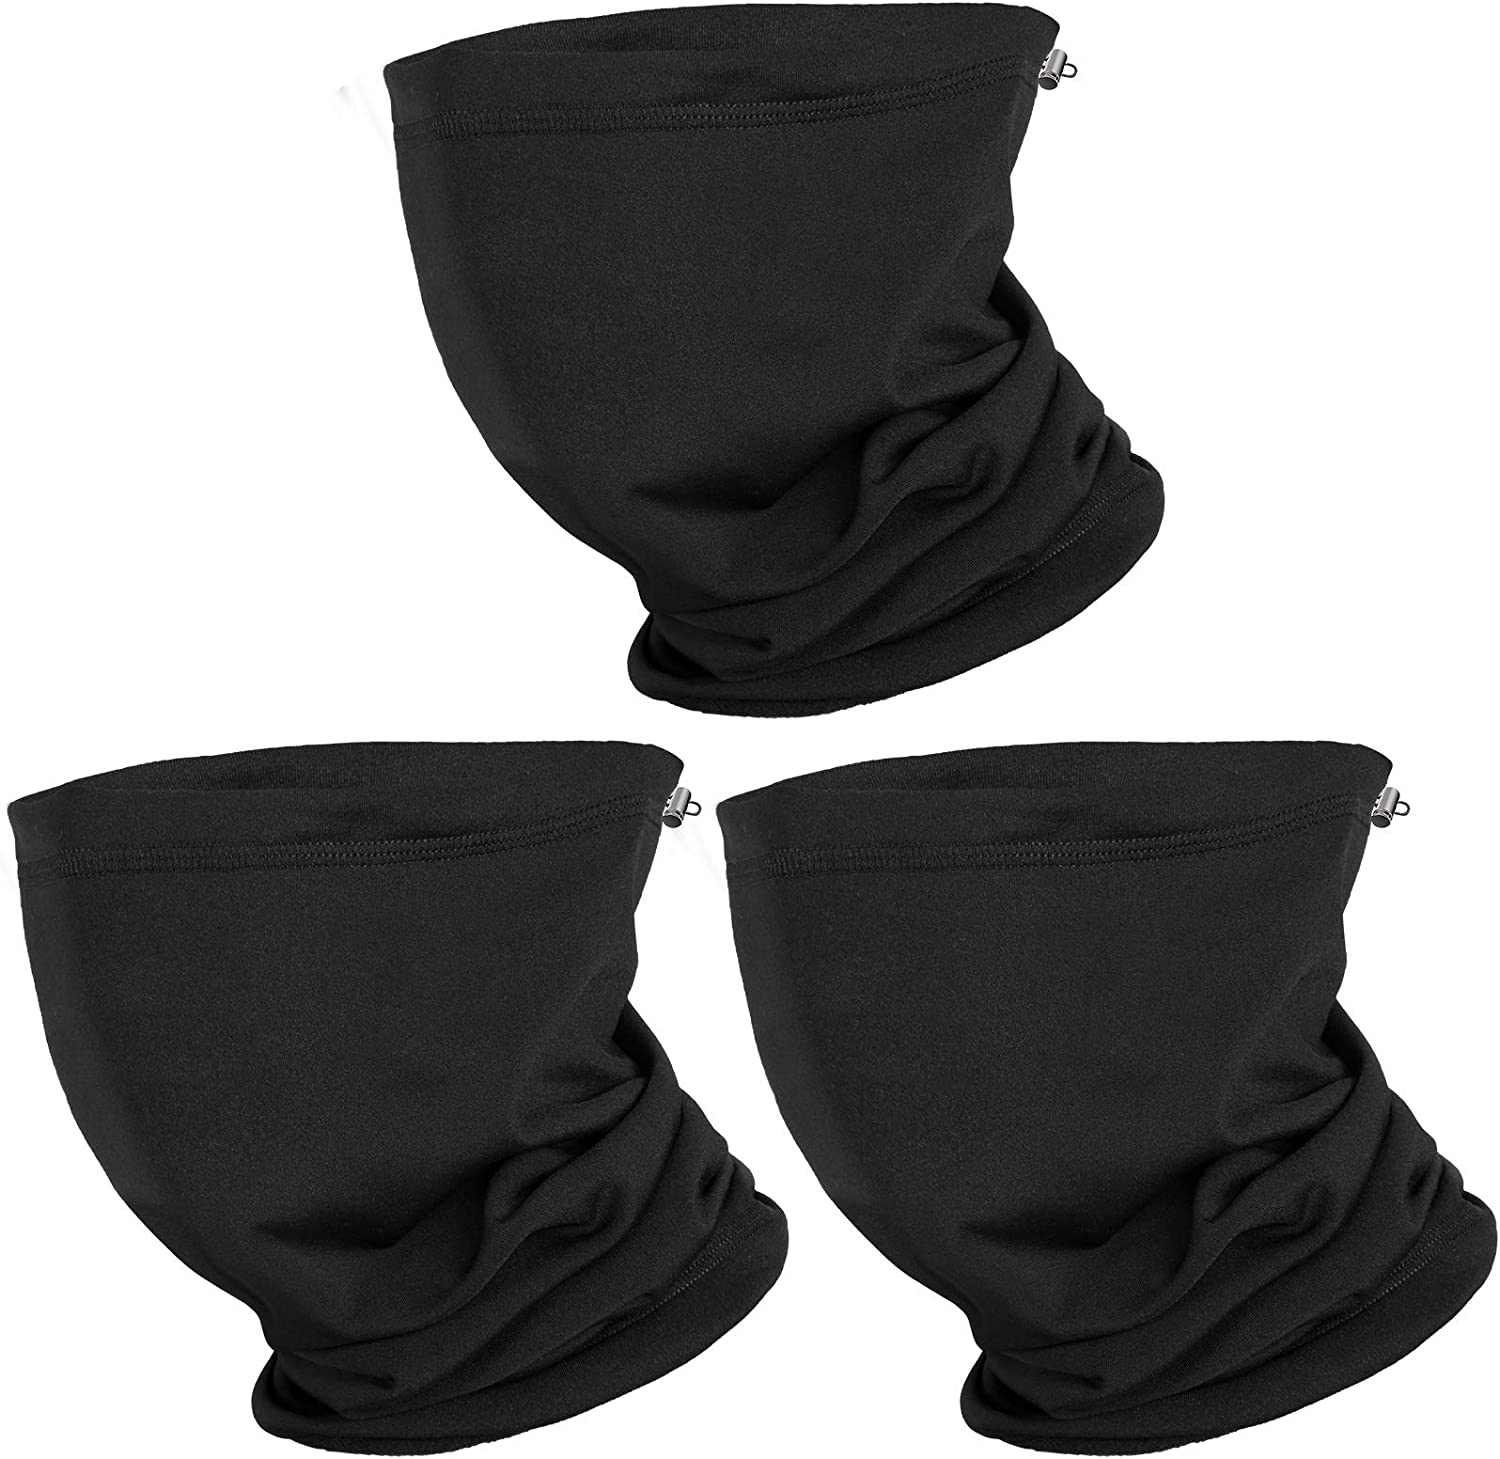 Pack of 3 Adjustable Neck Gaiter Warmer- Outdoor Black Face Mask with Drawstring Windproof Winter Warm Face Cover Cold Weather Scarf Headwear for Skiing Cycling Hiking Snowboard Running Workout